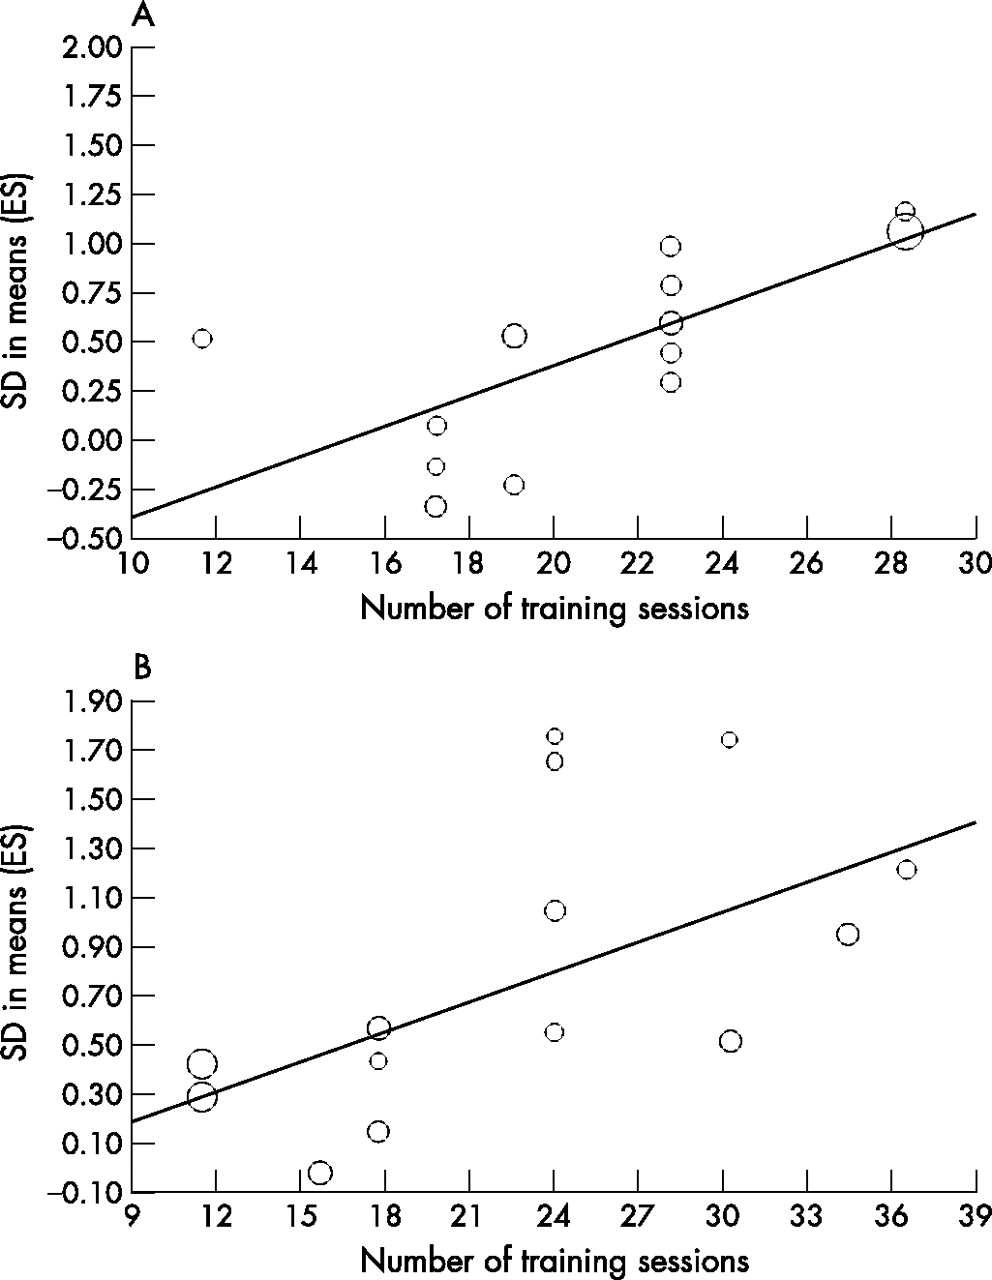 Does plyometric training improve vertical jump height? A